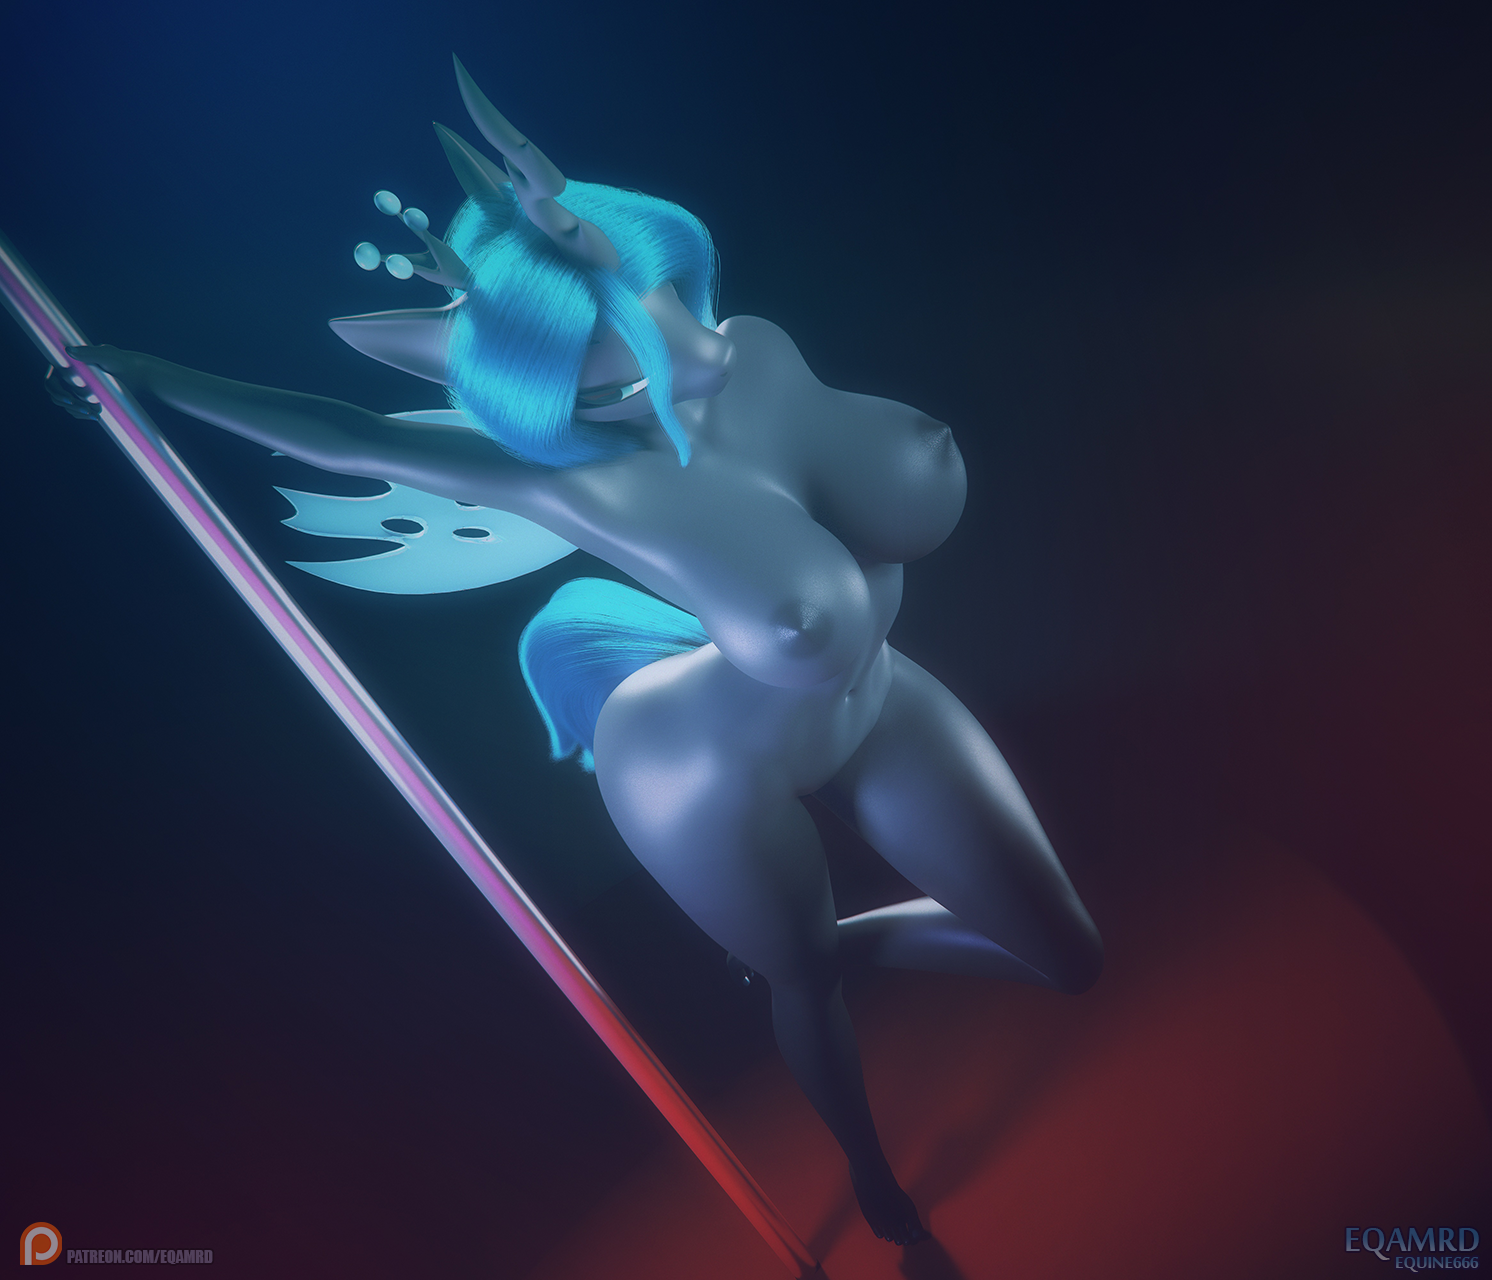 Chrysalis model for future projects!